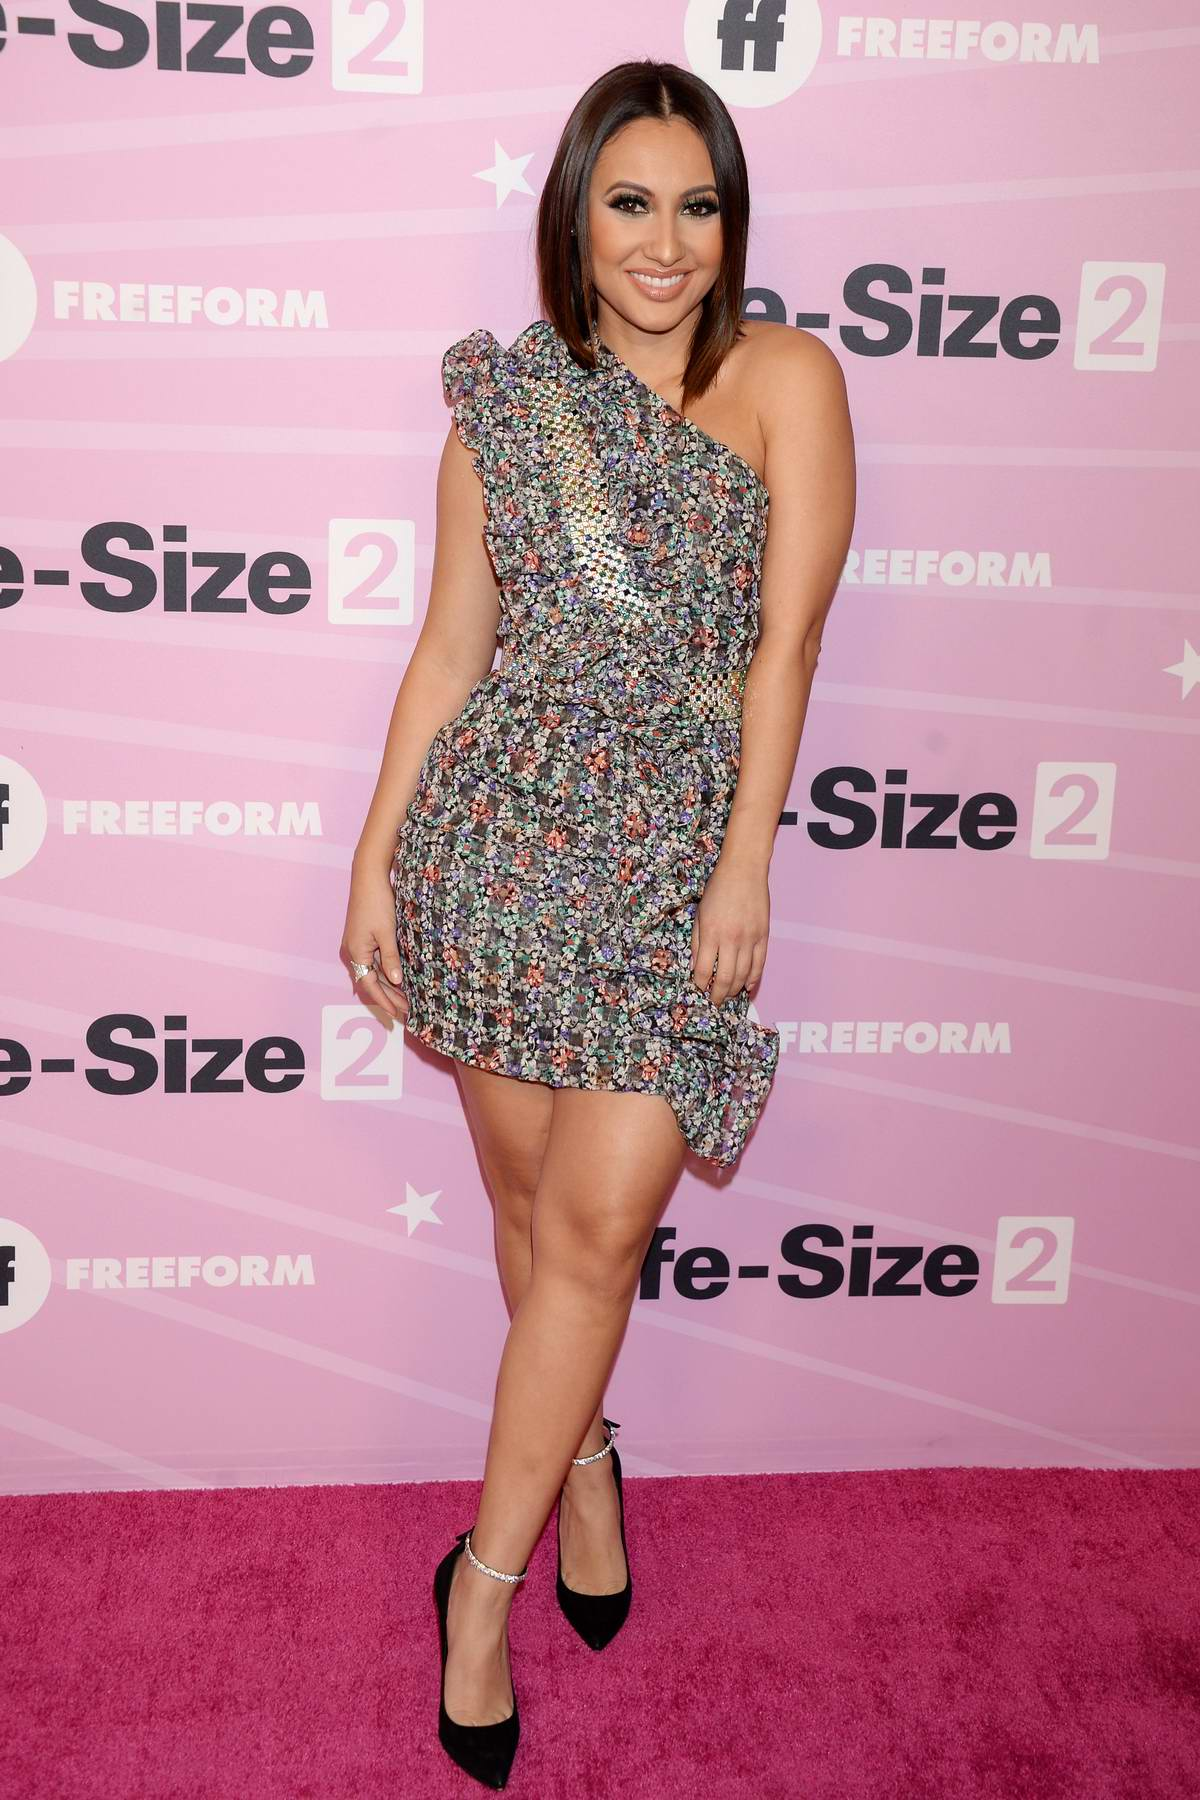 Francia Raisa attends 'Life Size 2' Premiere in Hollywood, California